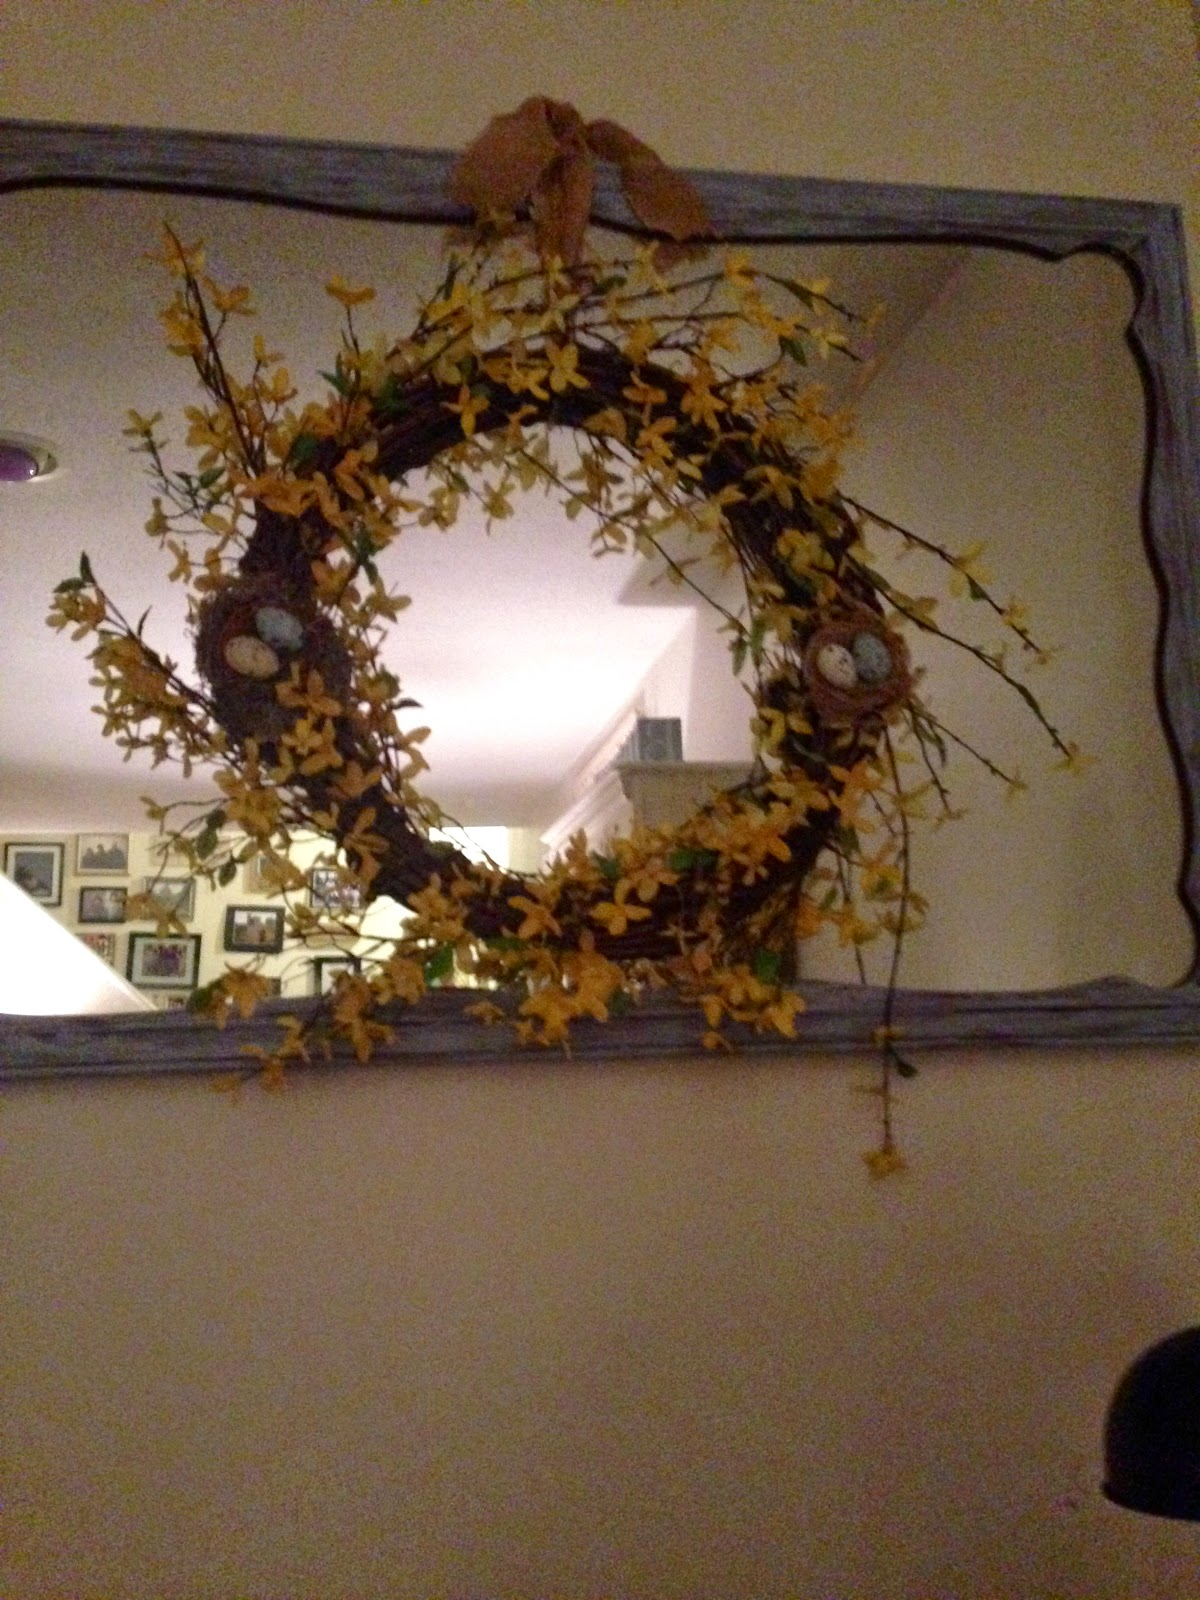 REFINISHED THRIFT STORE MIRROR